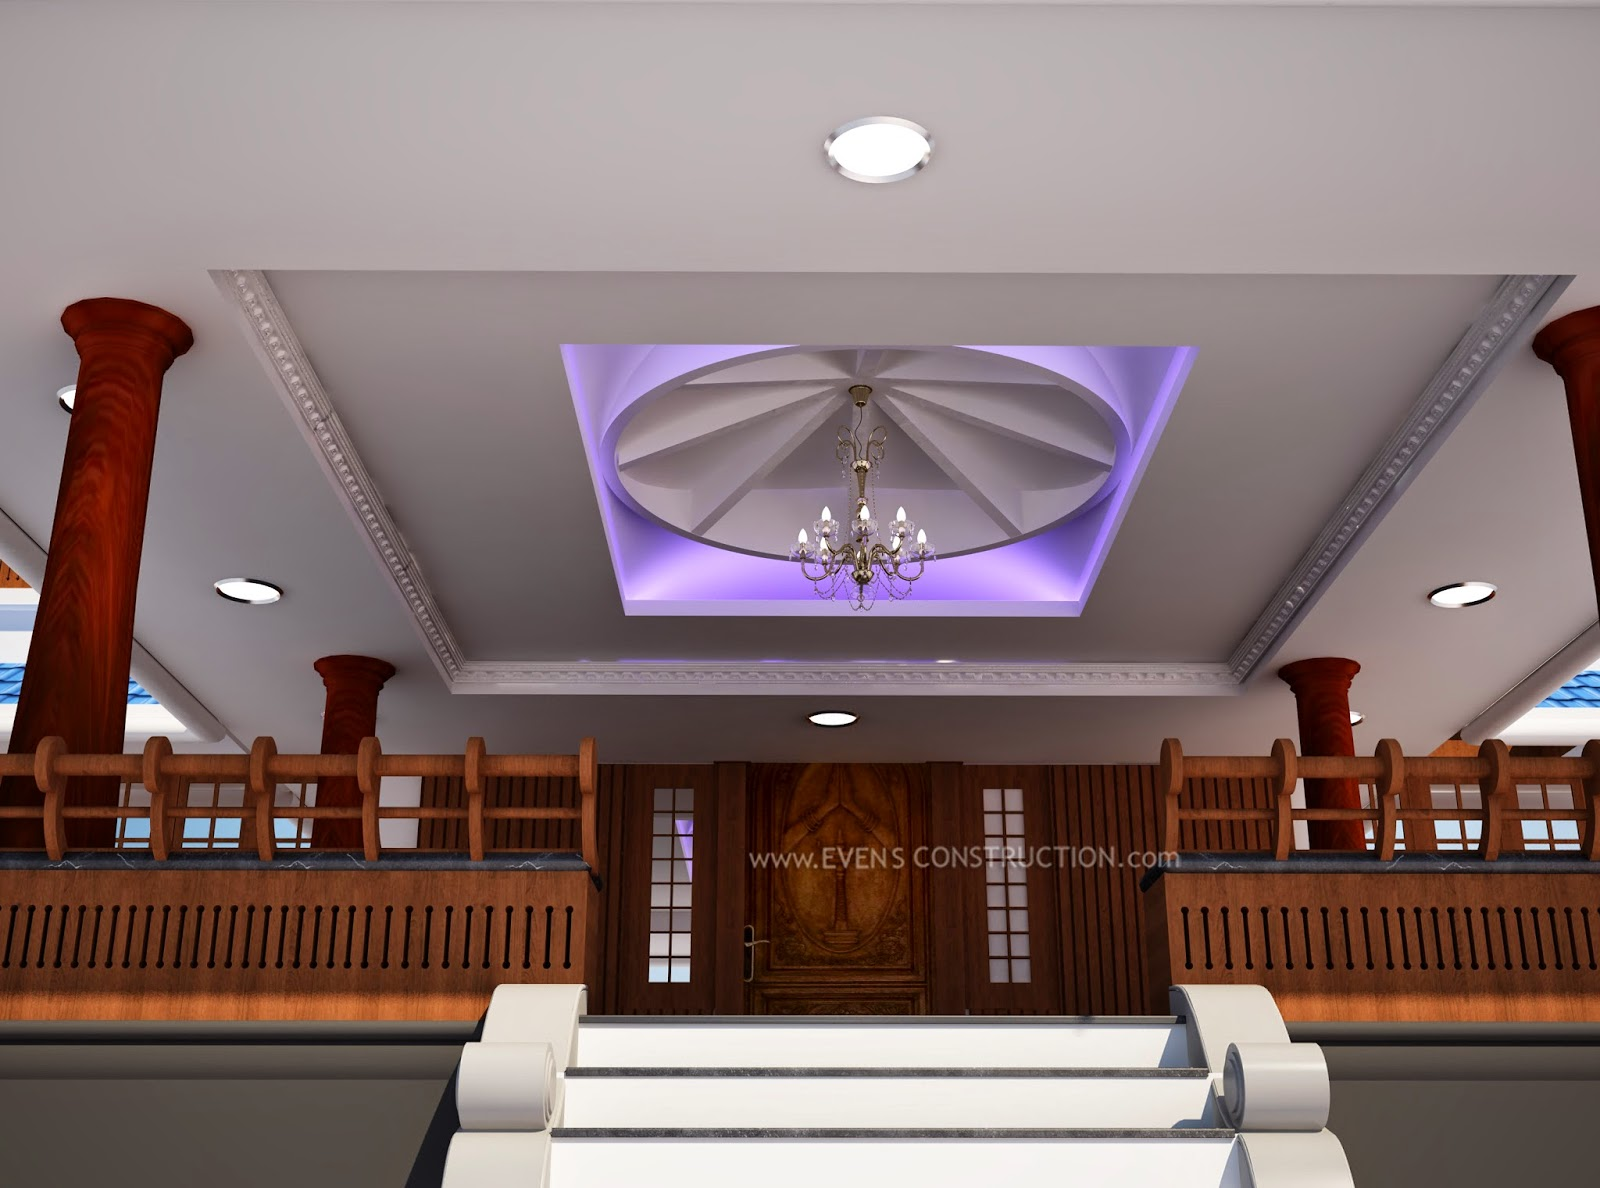 Sitout ceiling dining room interiors photos